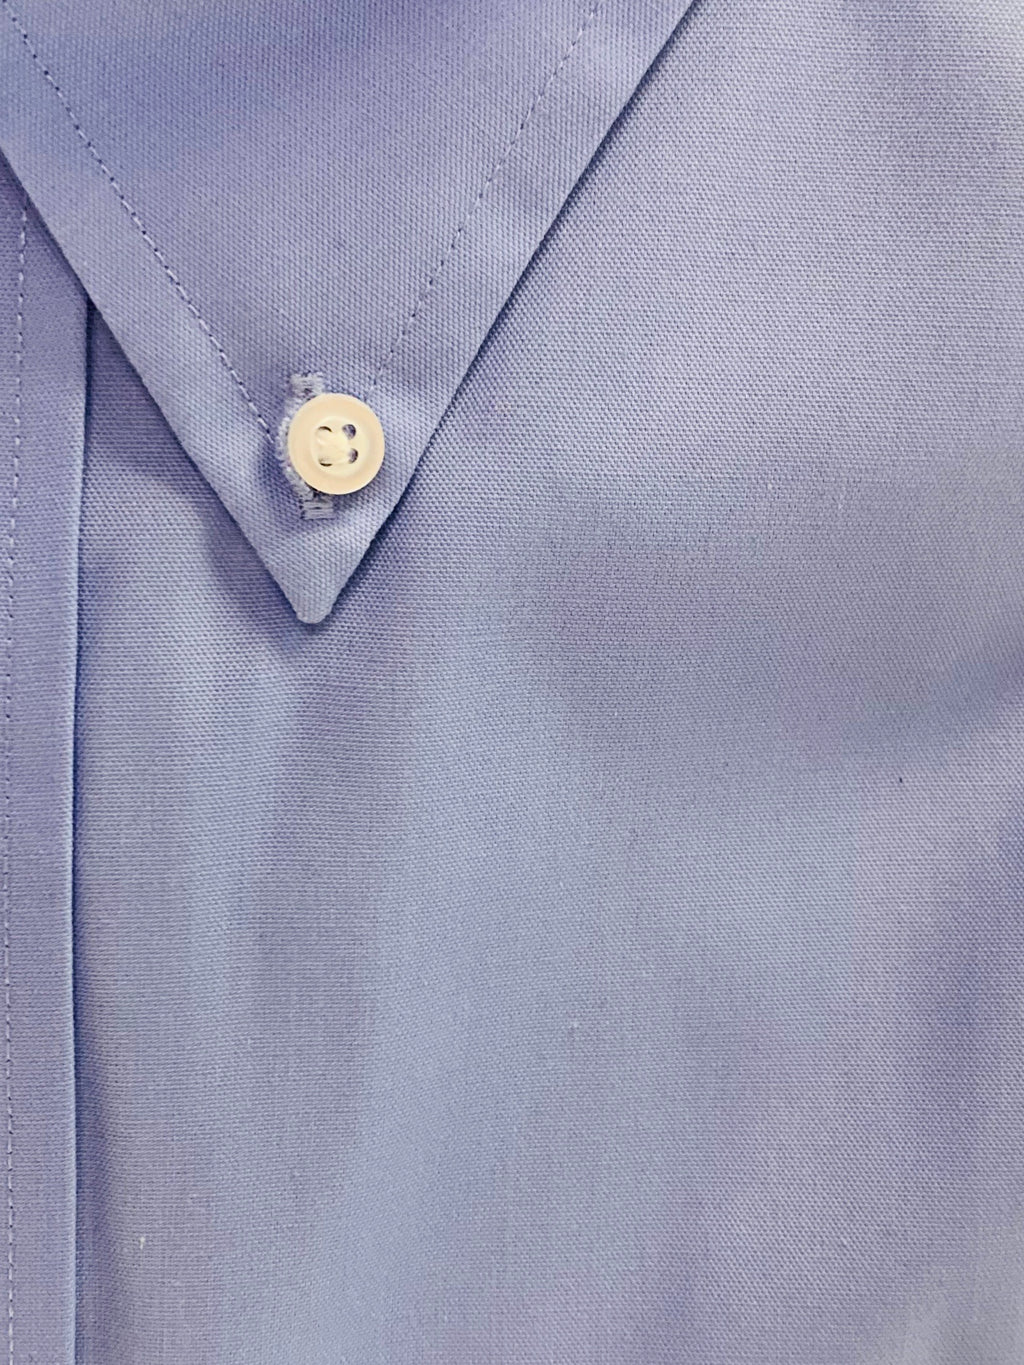 Giovanni's Button Down Collar Dress Shirt - Blue -12